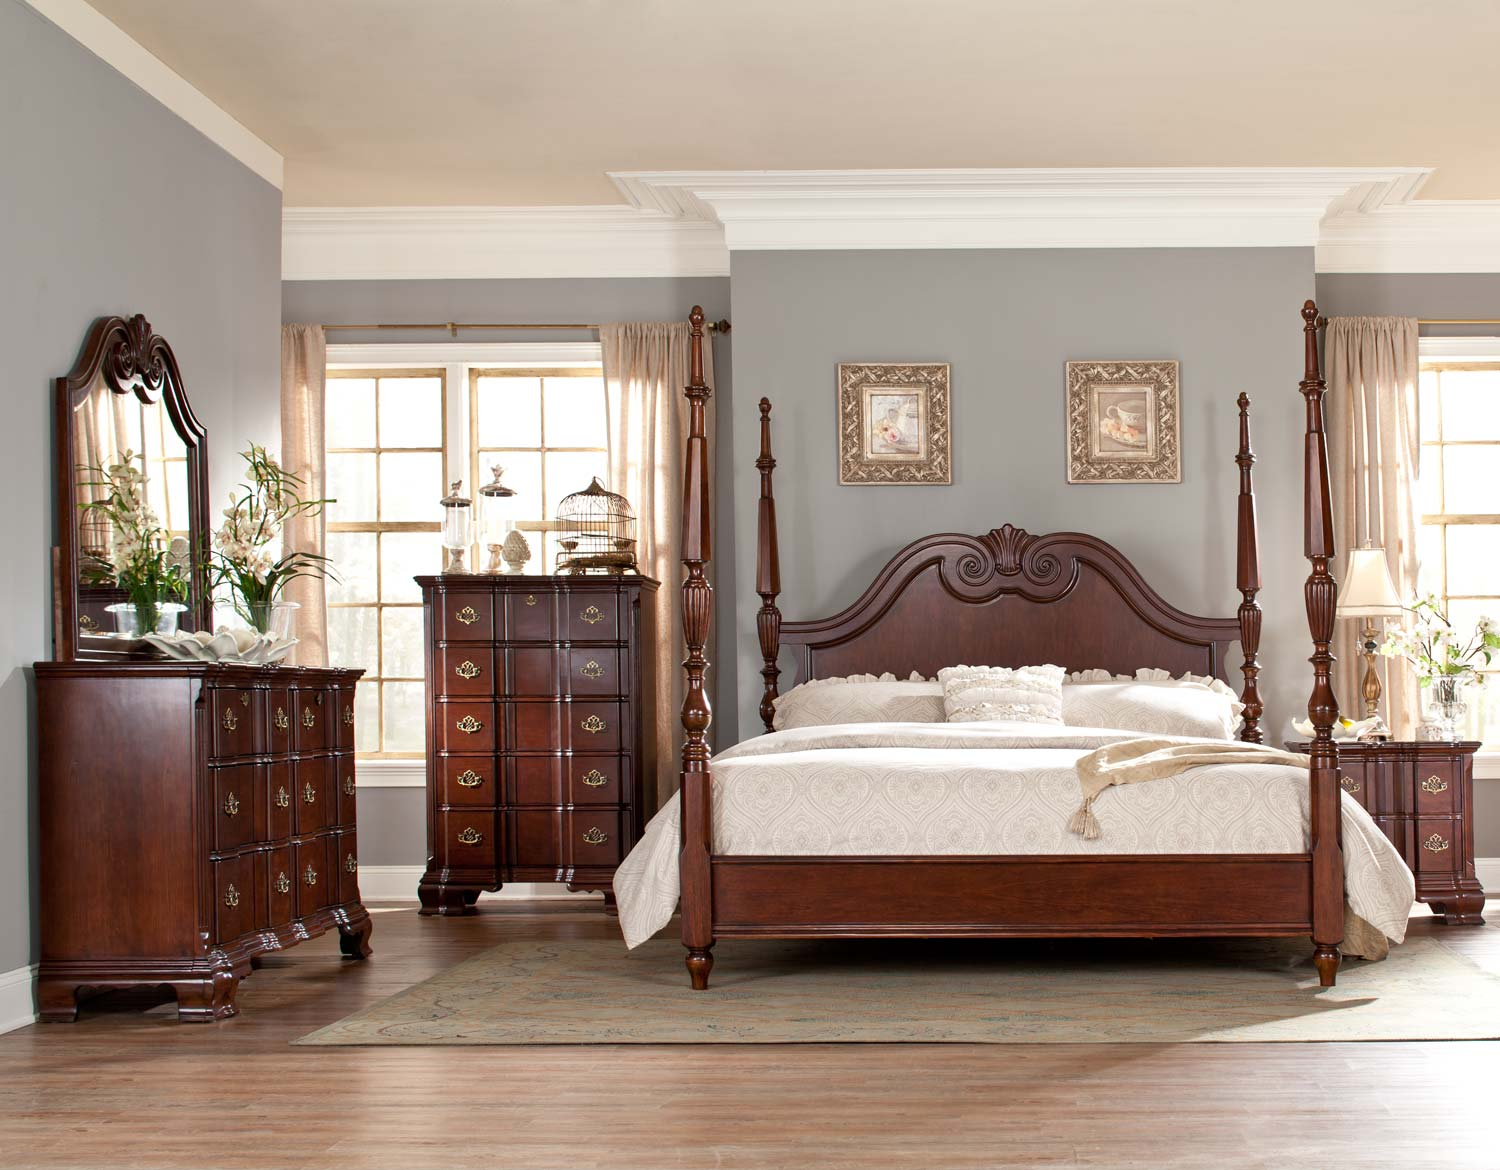 Homelegance Guilford Tall Poster Bedroom Set - Brown Cherry